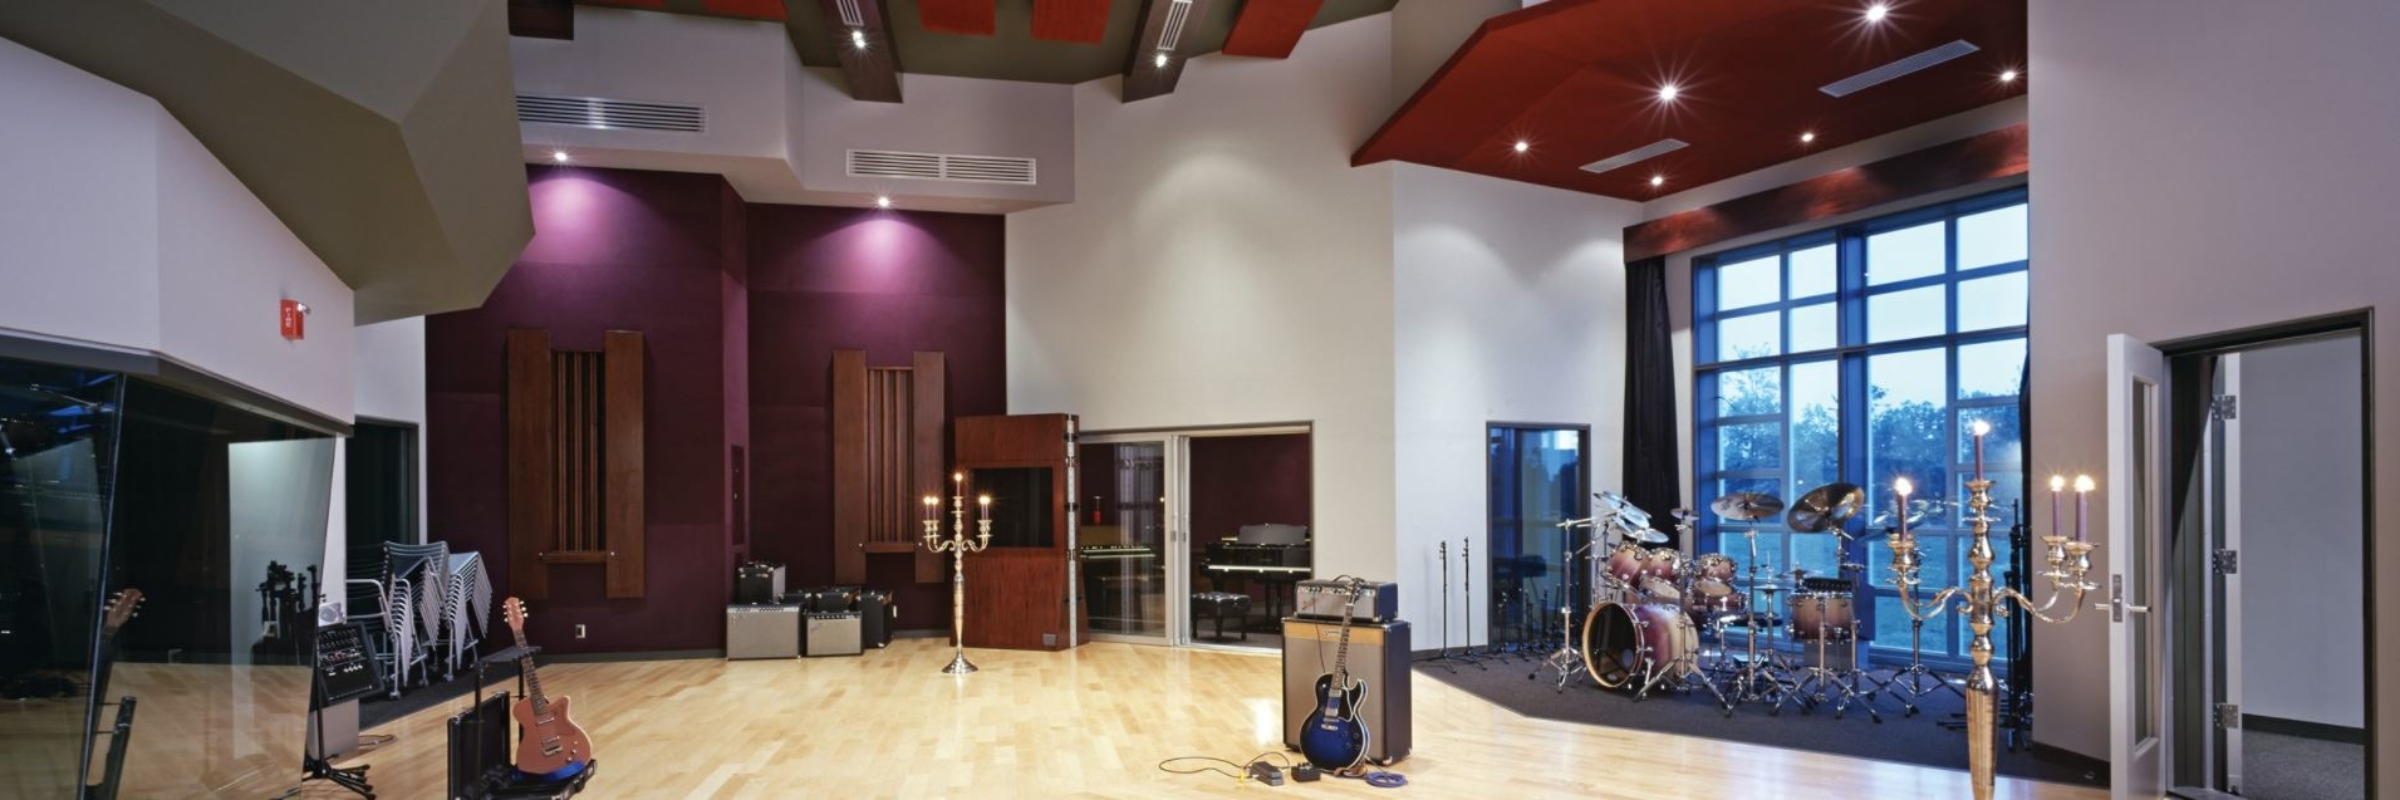 music-studio-design-concept